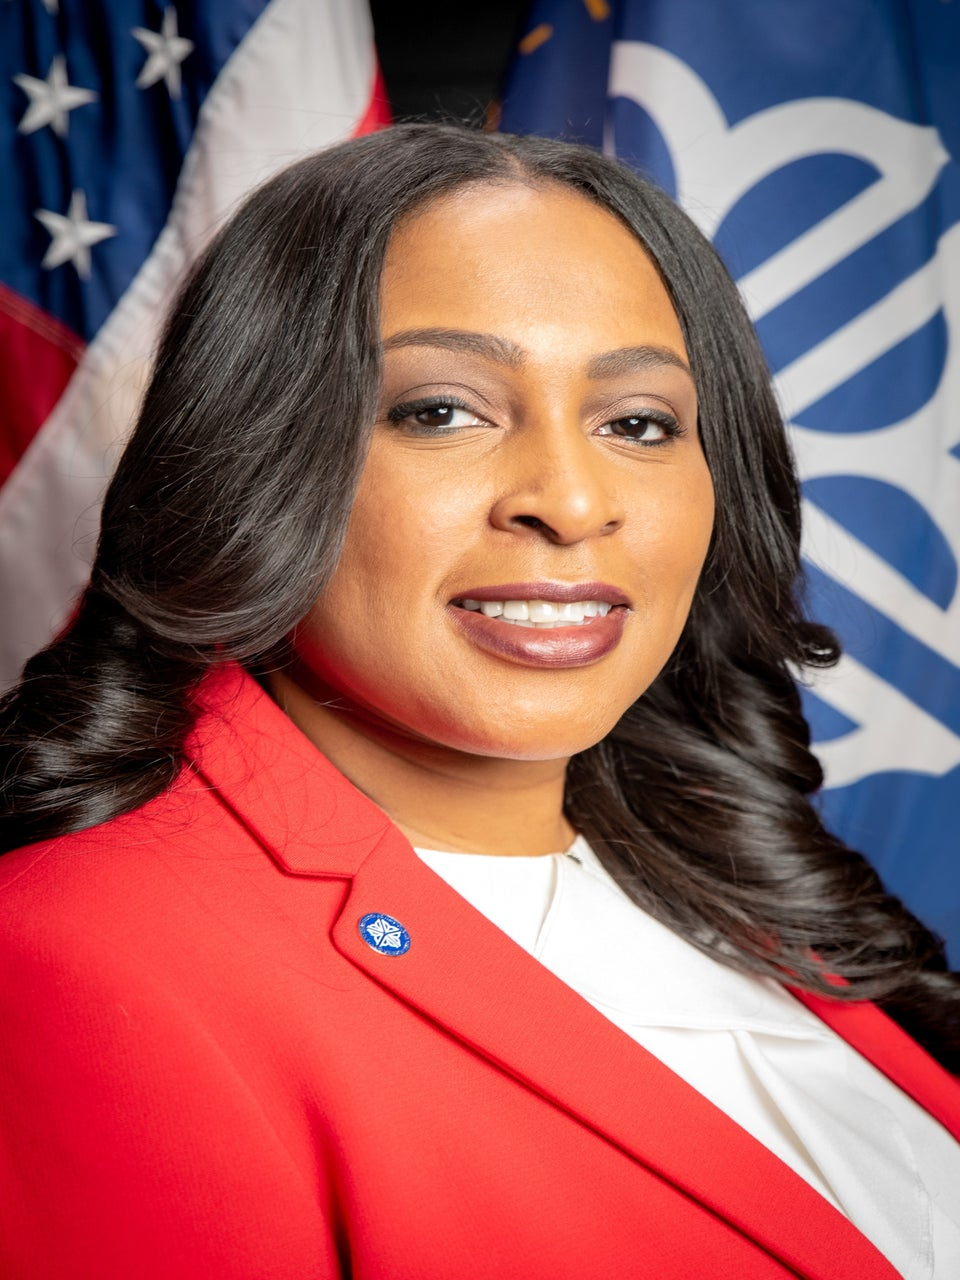 Lovely Warren, Mayor of Rochester, NY, Focuses On Education And Community Revitalization